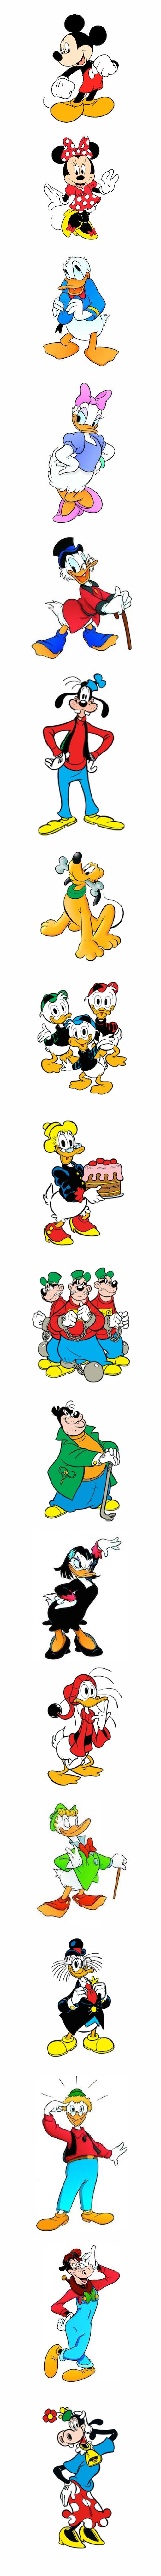 Walt Disney: Topolino, Paperino, Paperina, Topolina, Qui Quo Qua, Paperoga, Zio Paperone, Banda Bassotti, Archimede, Pluto, Pippo, ecc. (Mickey Mouse, Minnie, Goofy, Pluto, Donald Duck, Uncle Scrooge, Daisy Duck & Co.)